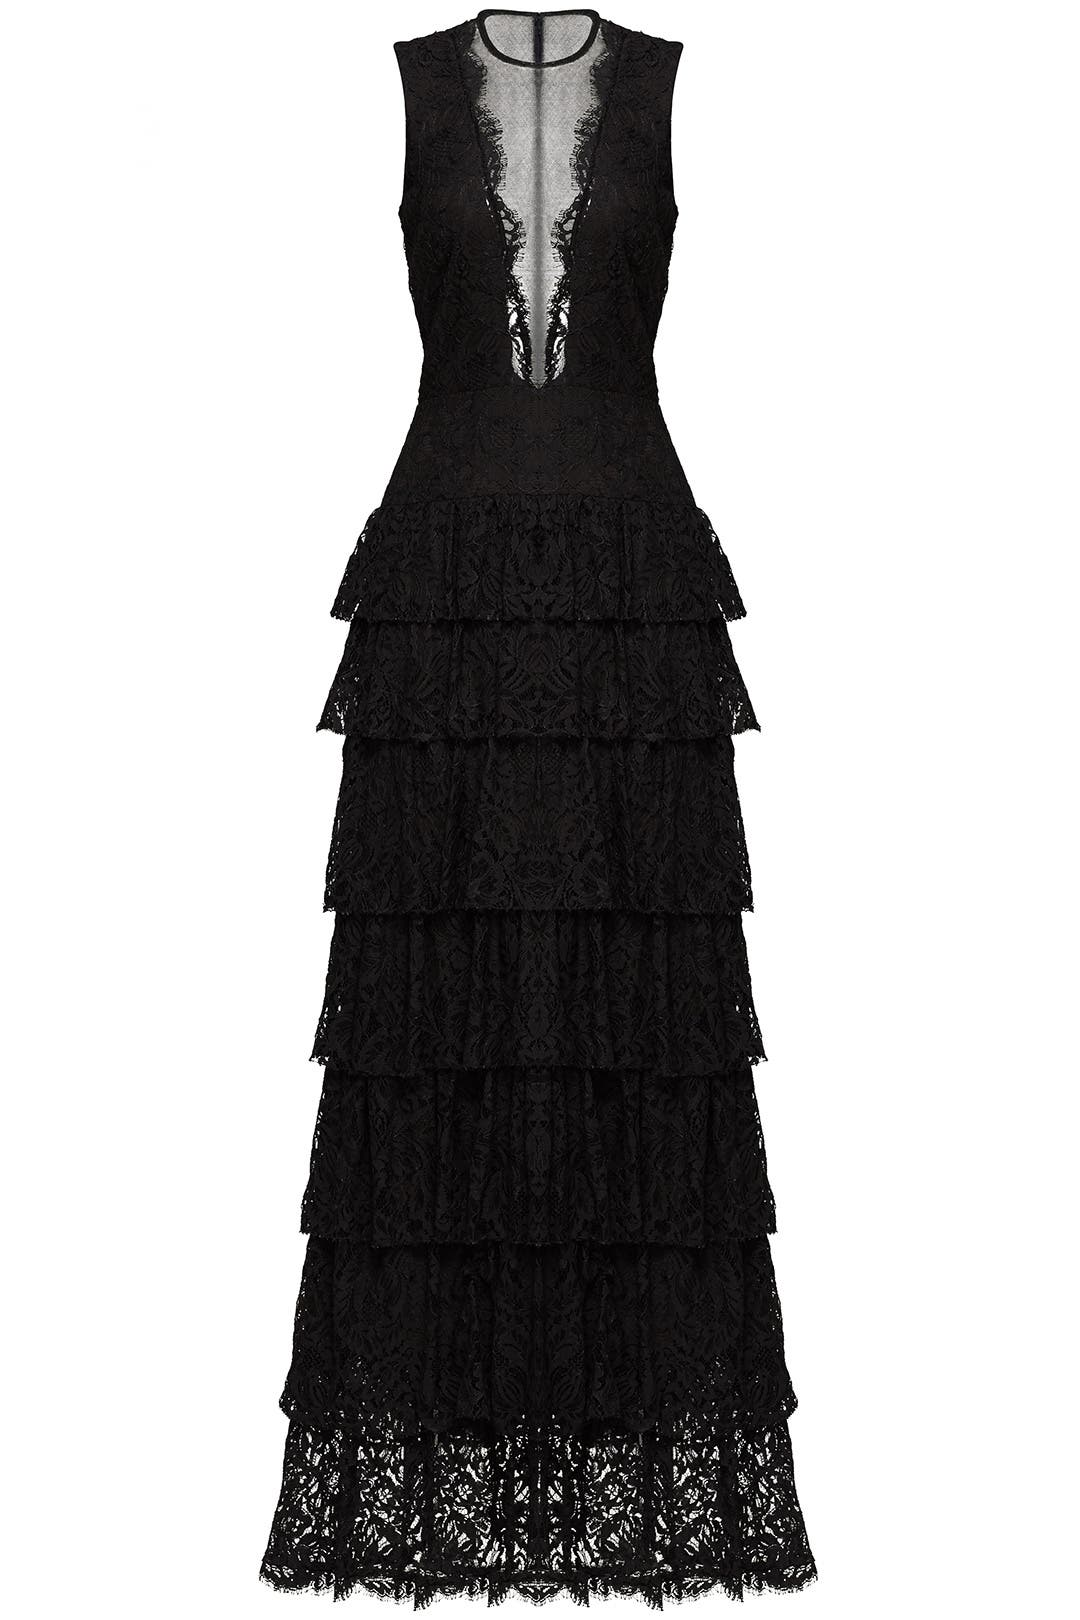 Black Lace Illusion Gown by Nicole Miller for $115 - $135 | Rent the ...